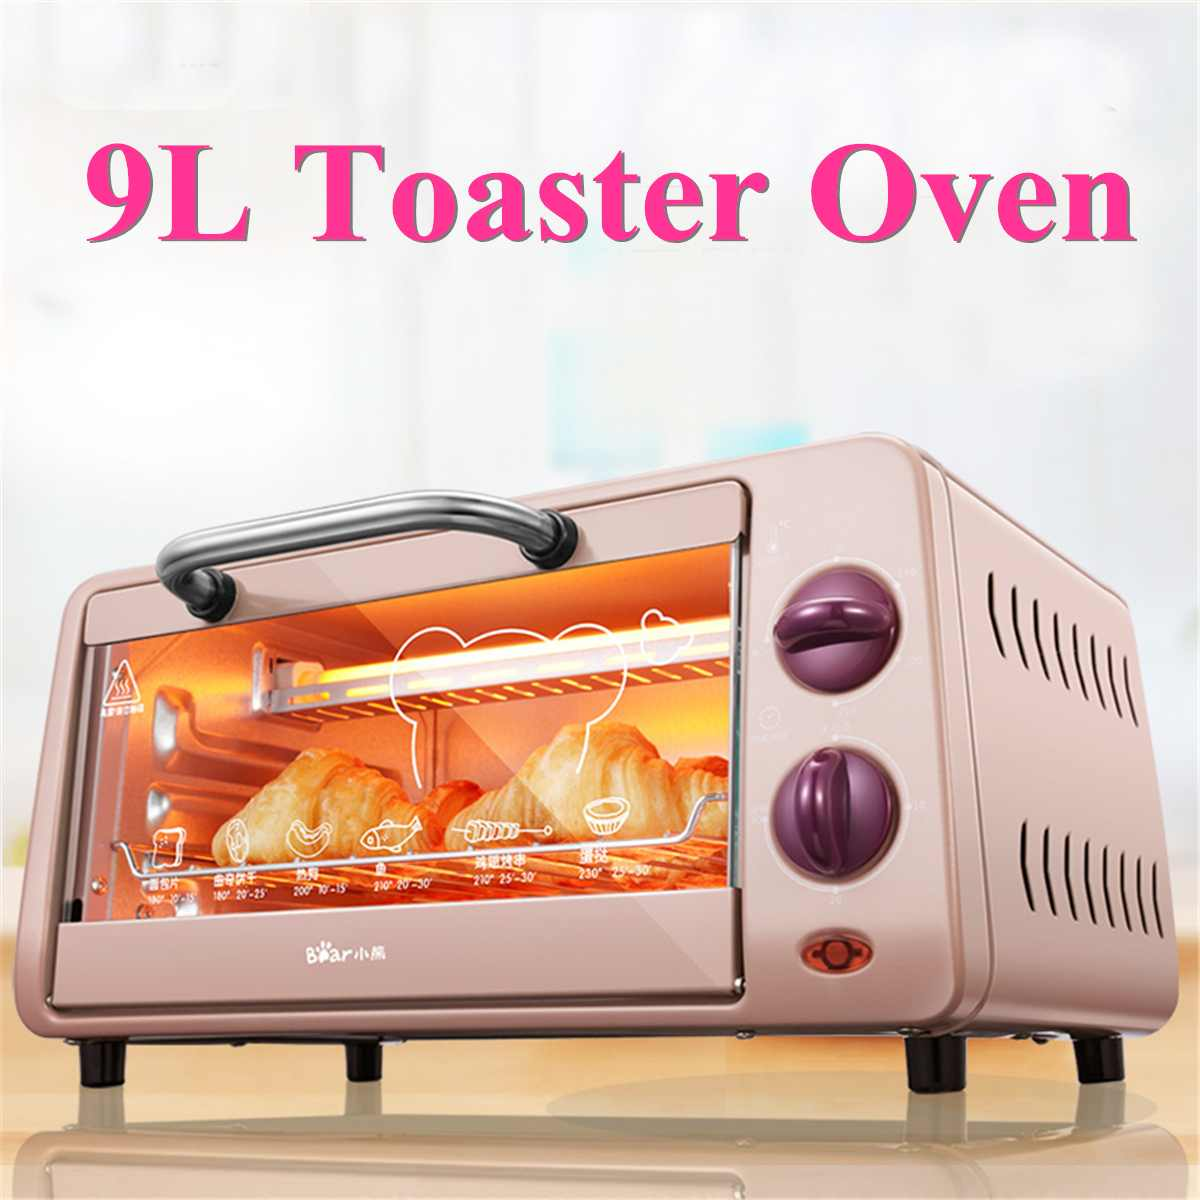 9L 800W Electric Toaster Oven Stainless Steel Broiler Countertop Bake Mini Household Oven Multifunctional Pizza Baking Oven9L 800W Electric Toaster Oven Stainless Steel Broiler Countertop Bake Mini Household Oven Multifunctional Pizza Baking Oven